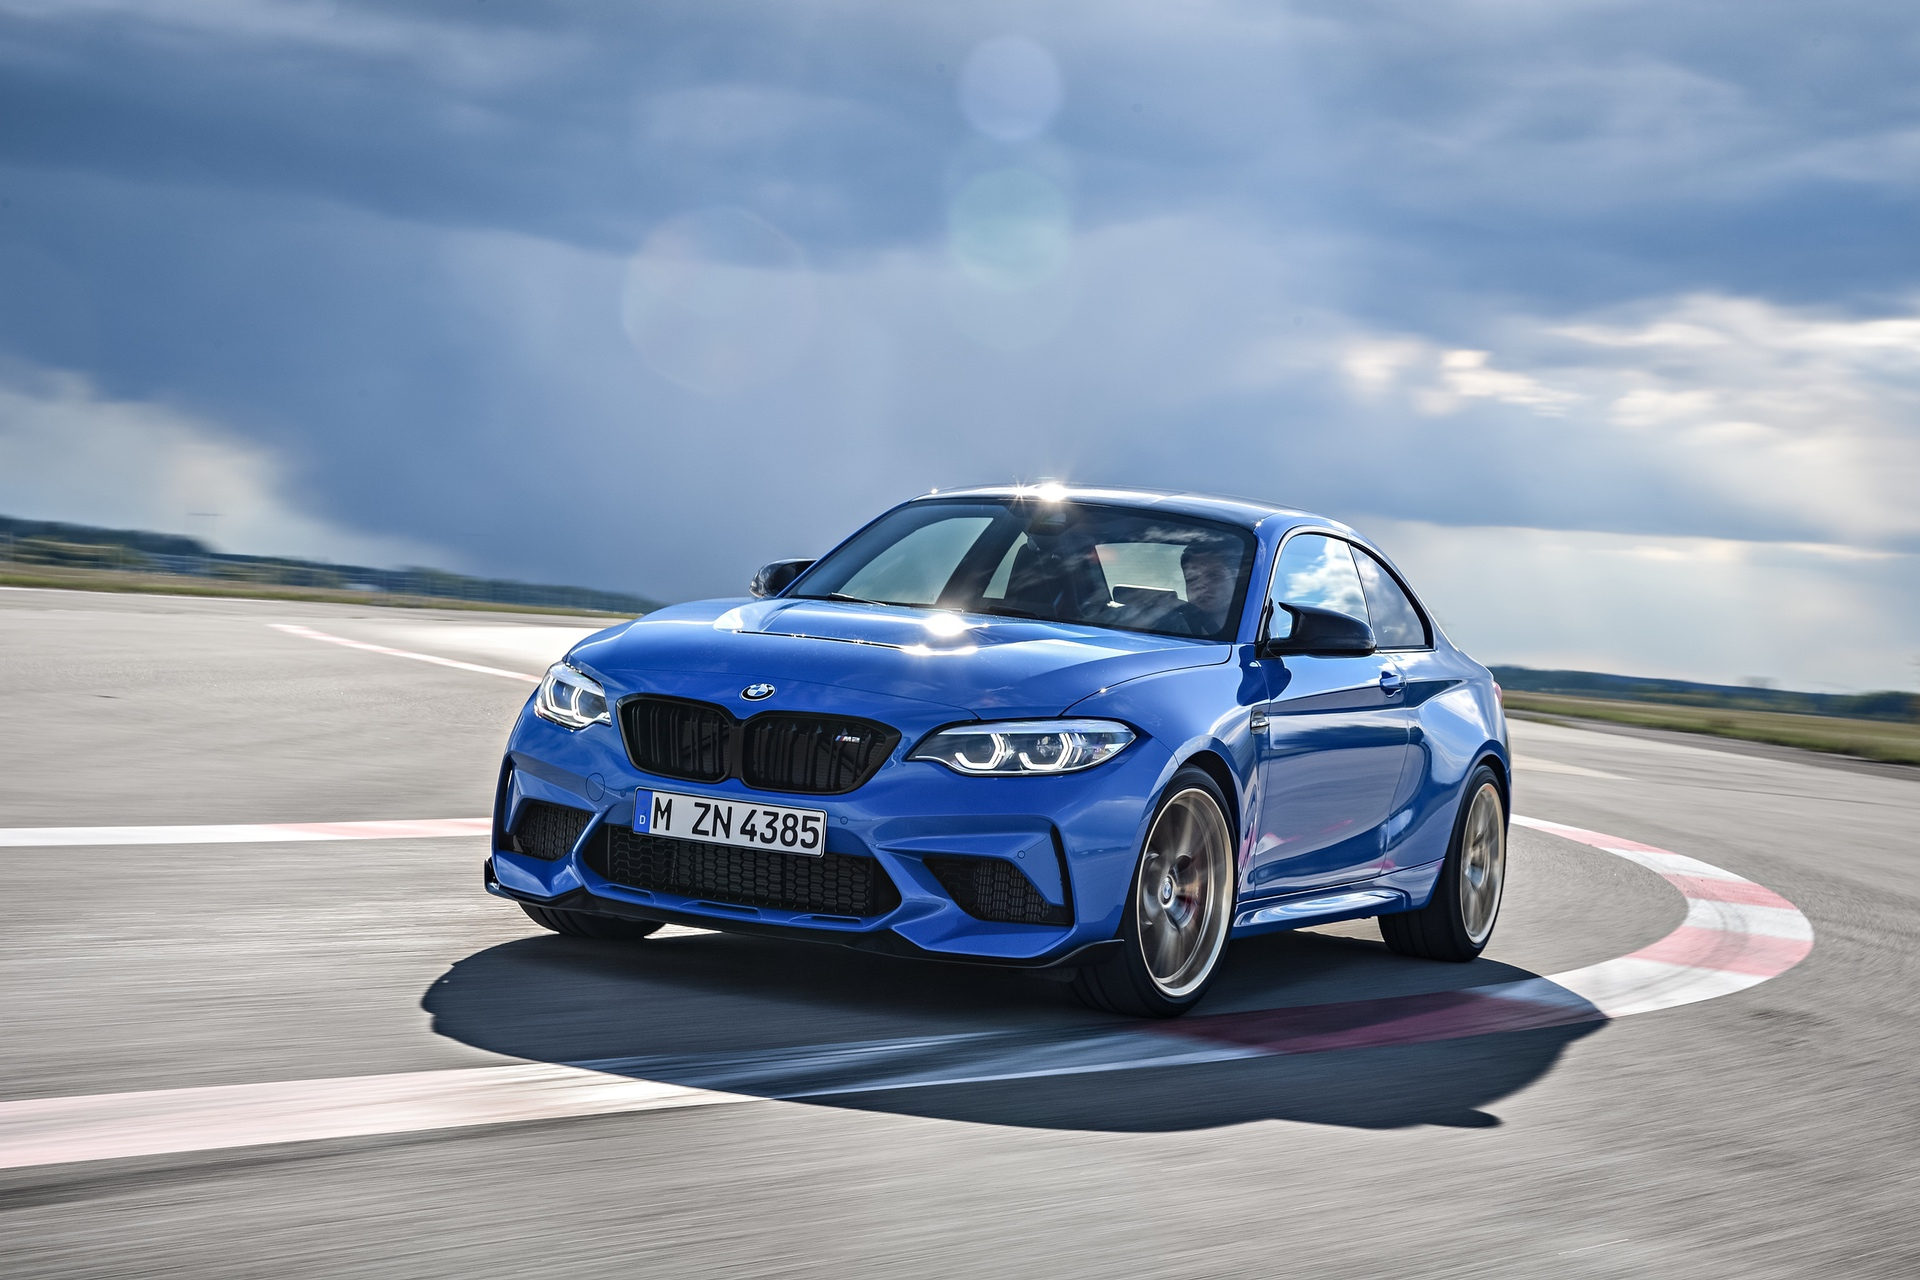 BMW M2 CS photos images 32